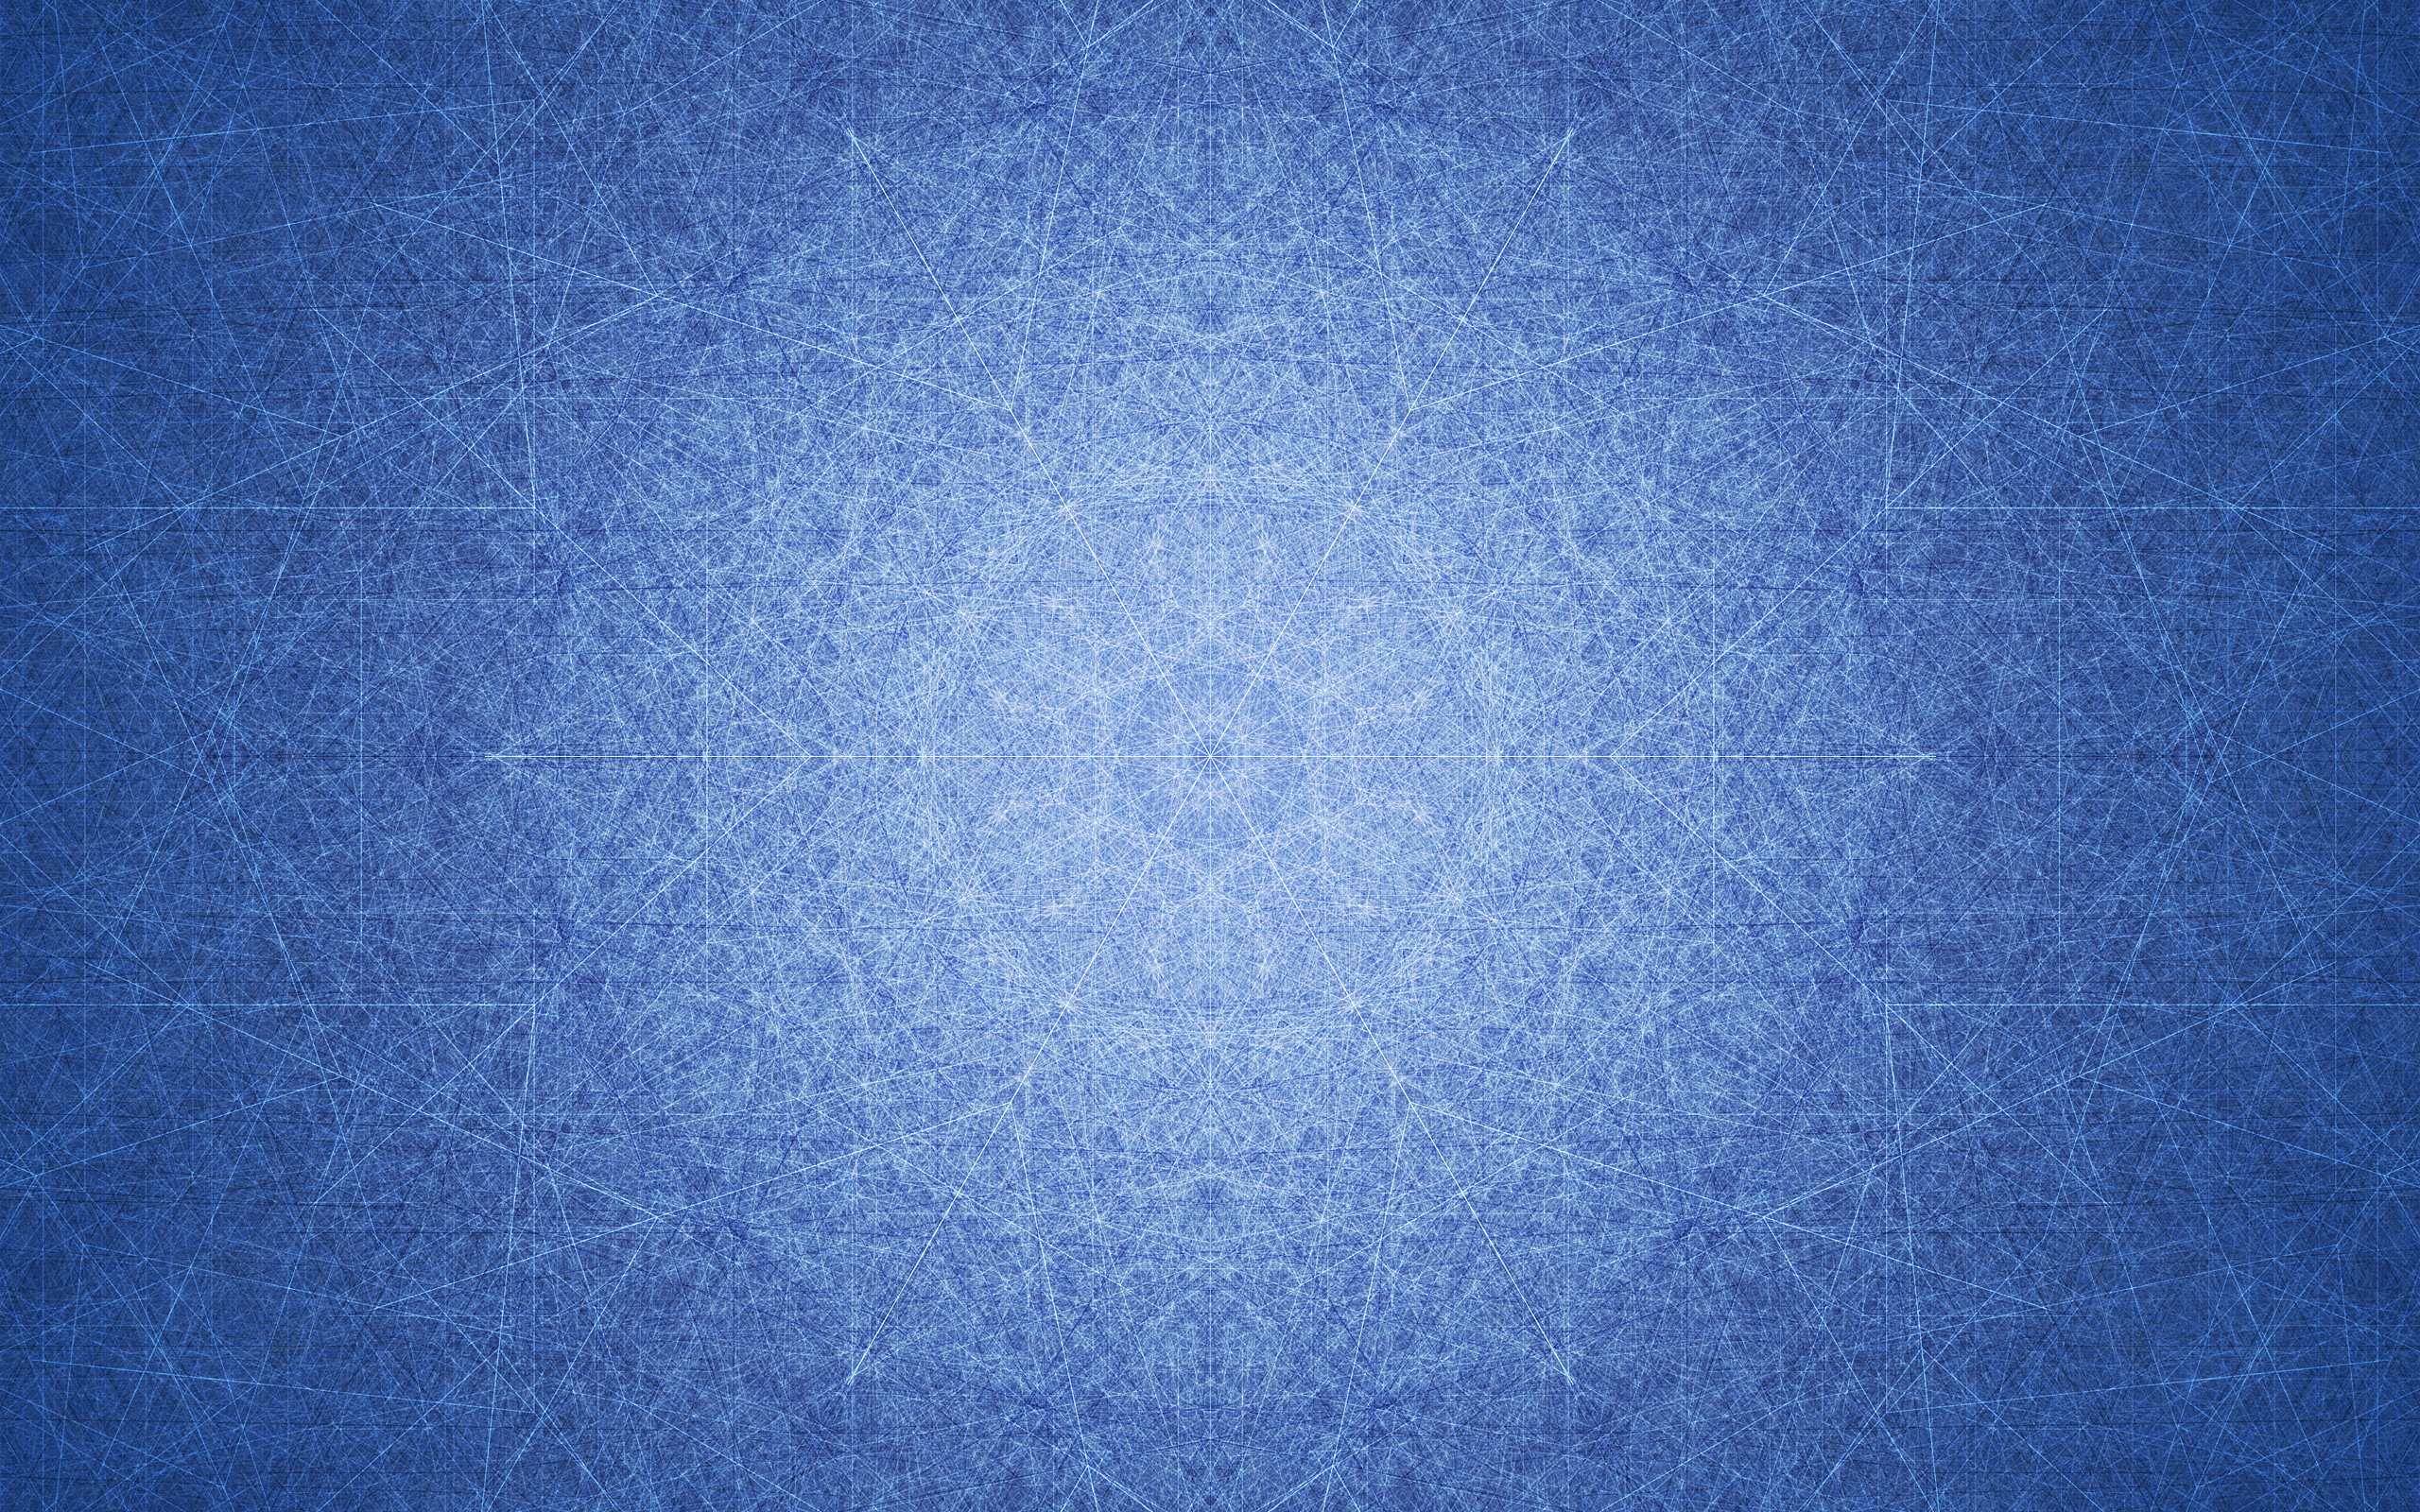 Abstract Pattern Blue Texture